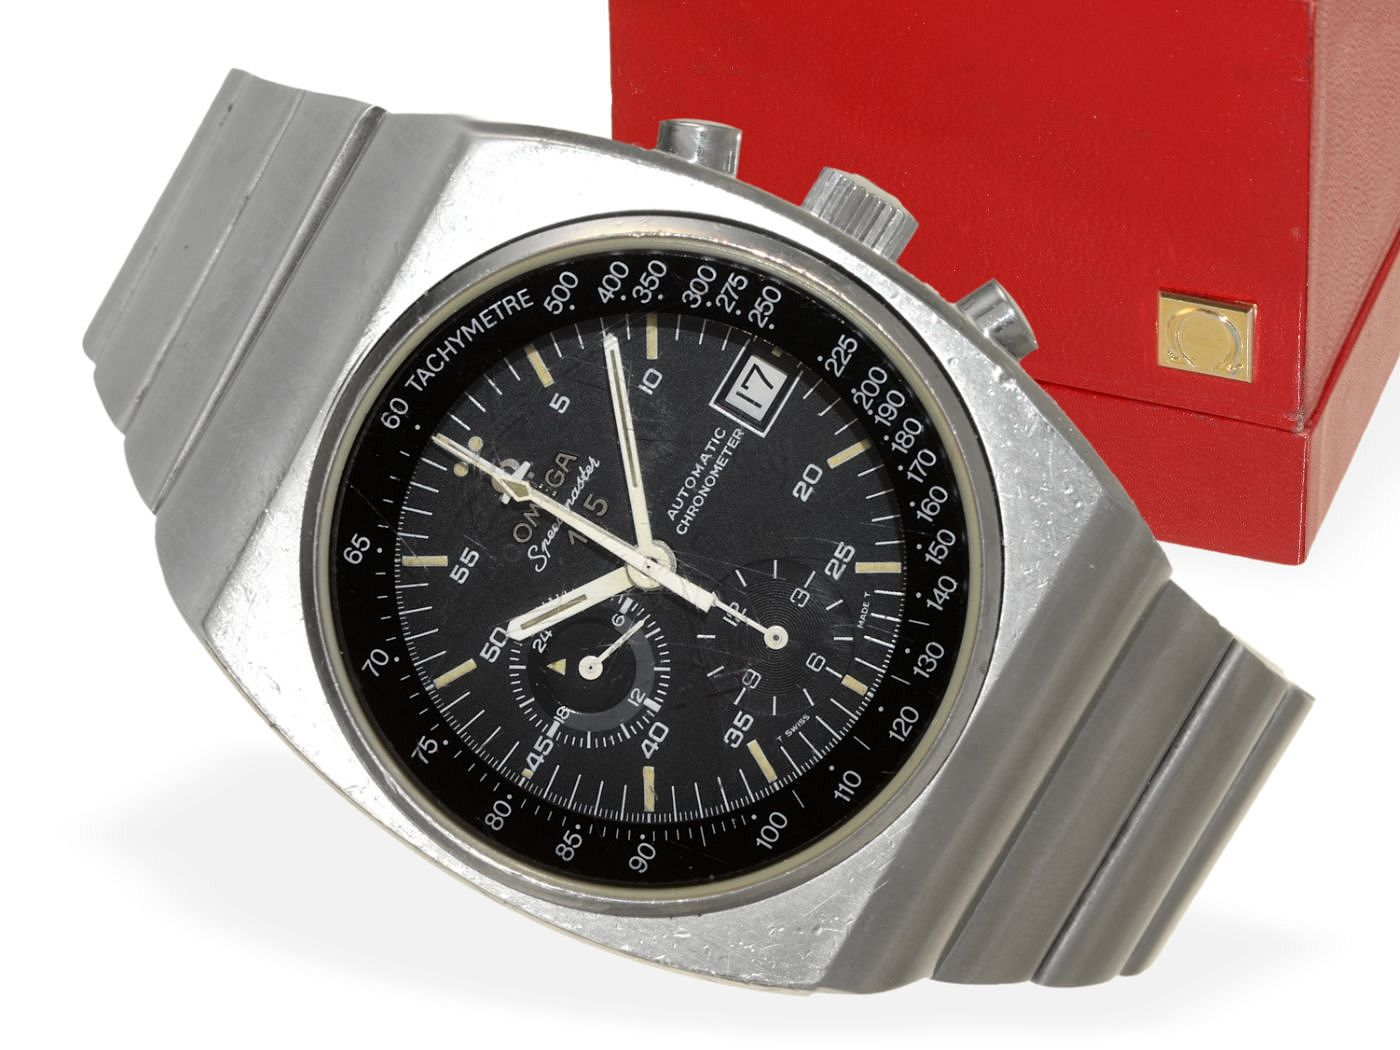 Wristwatch: vintage Omega Speedmaster chronograph 125, automatic chronometer with certificate, papers, original bill and original box from 1976-